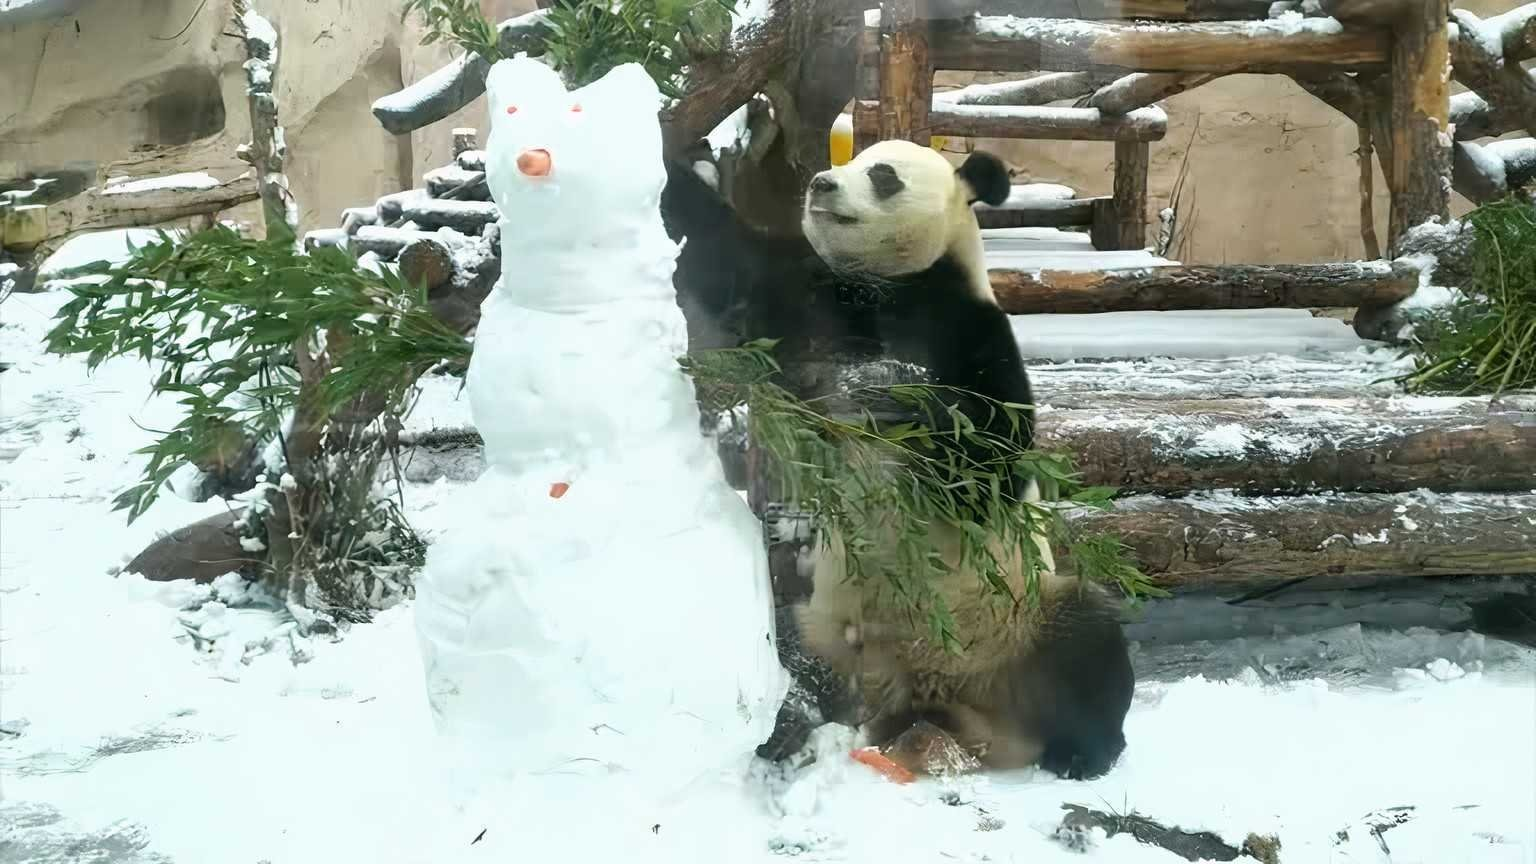 Giant panda Ru Yi fights a snowman in the Moscow zoo. (Reuters Photo)